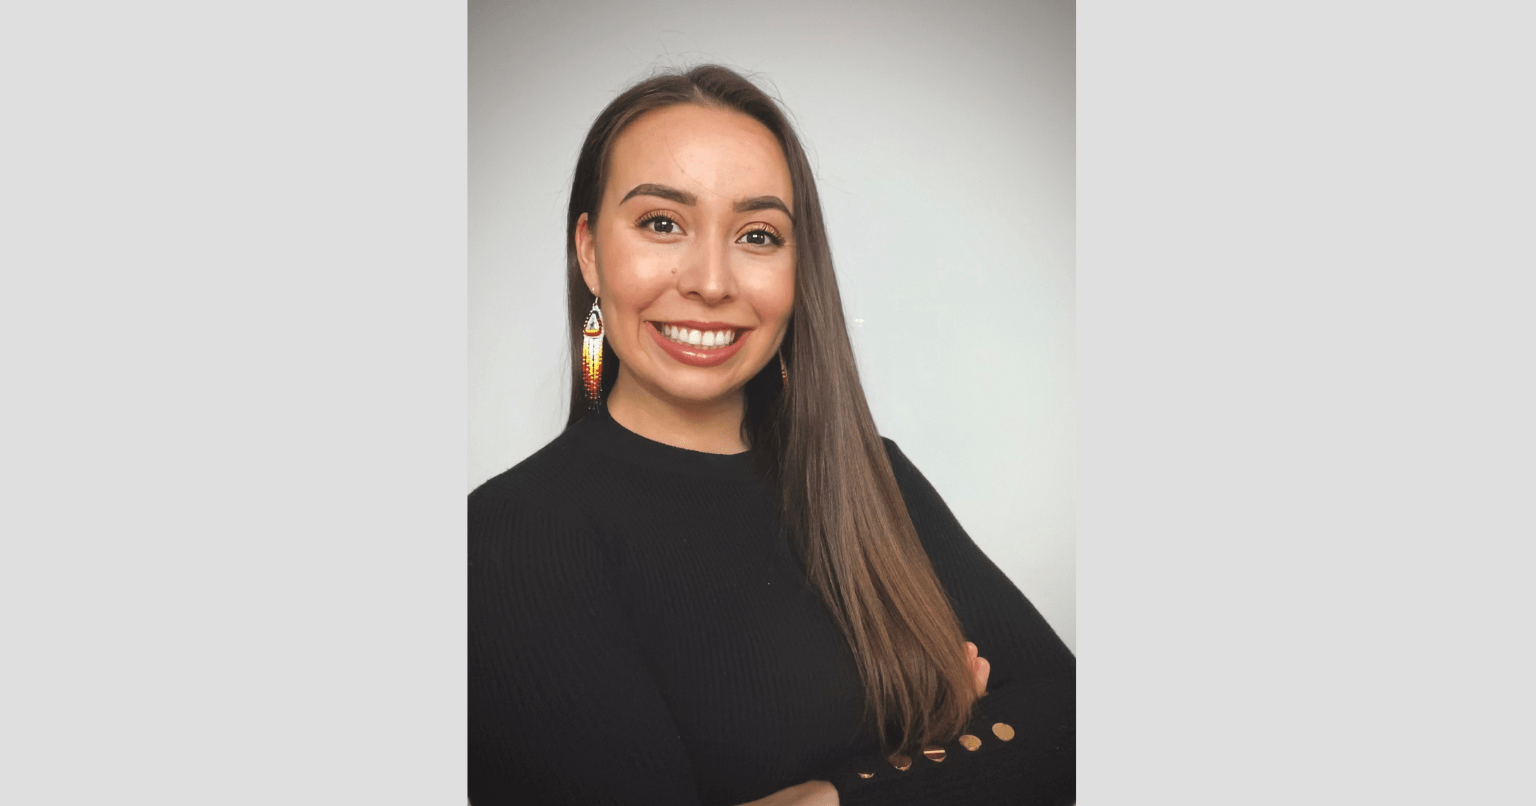 A portrait of a young Indigenous woman. The woman is wearing a black sweater and beaded earrings. She is smiling brightly with her arms crossed.